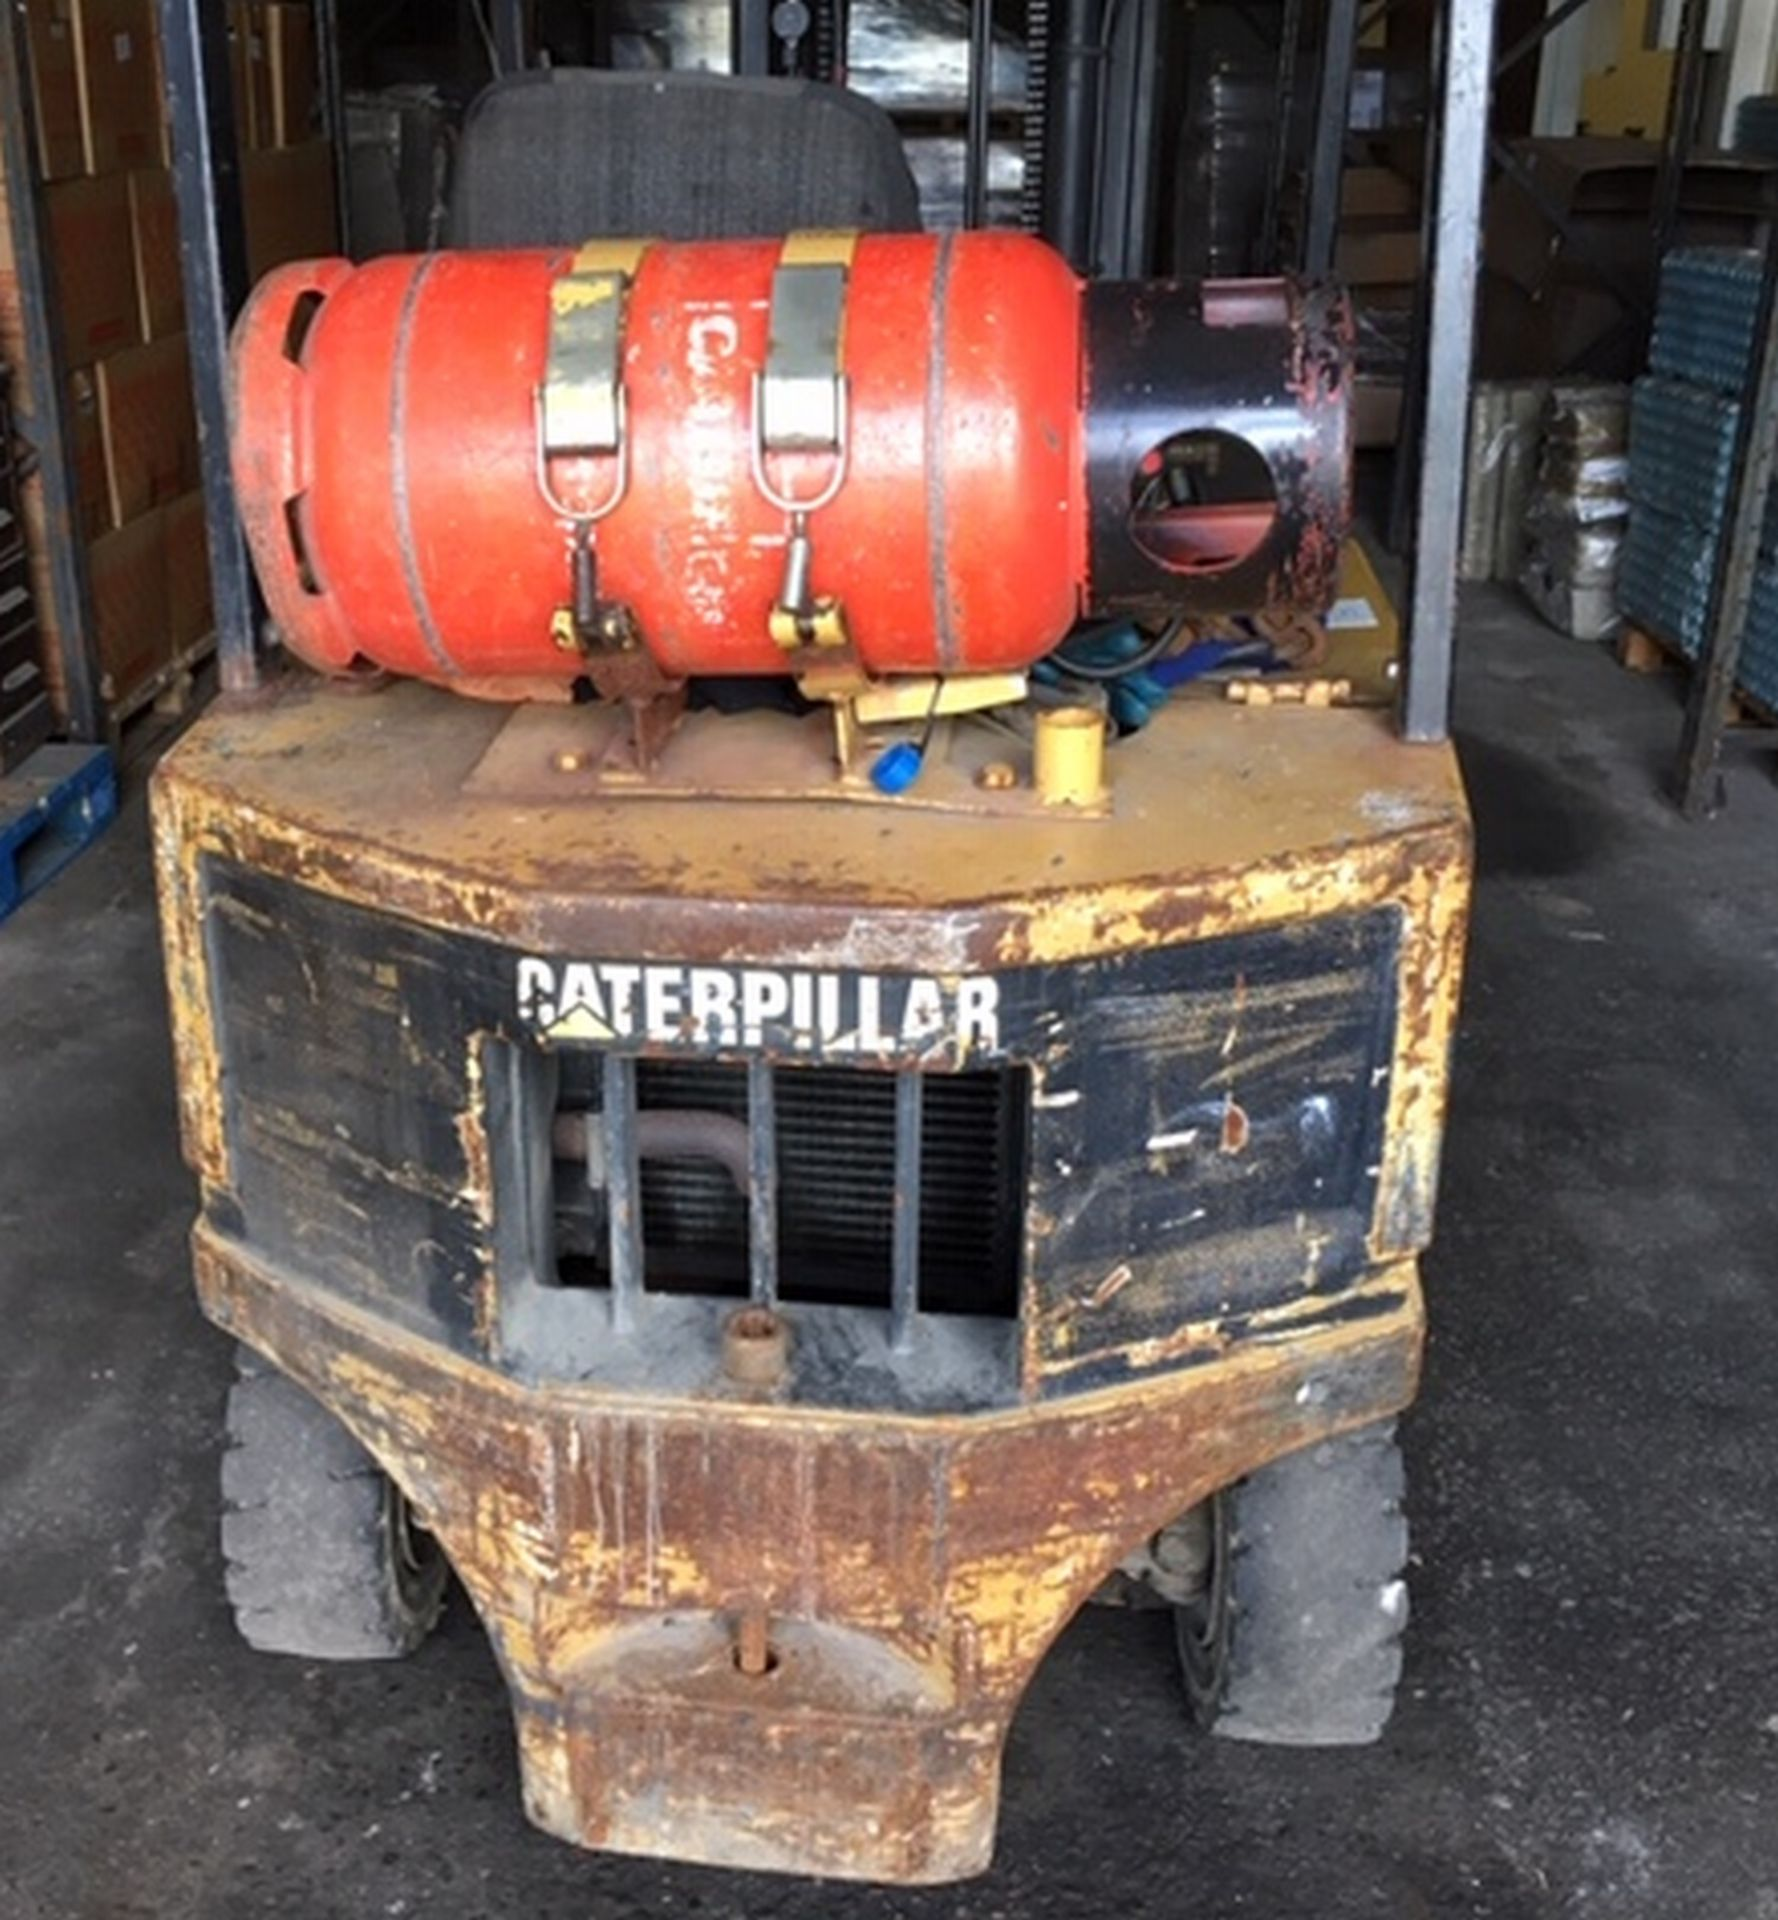 Lot 151 - Caterpillar V209 Gas Forklift - working order.